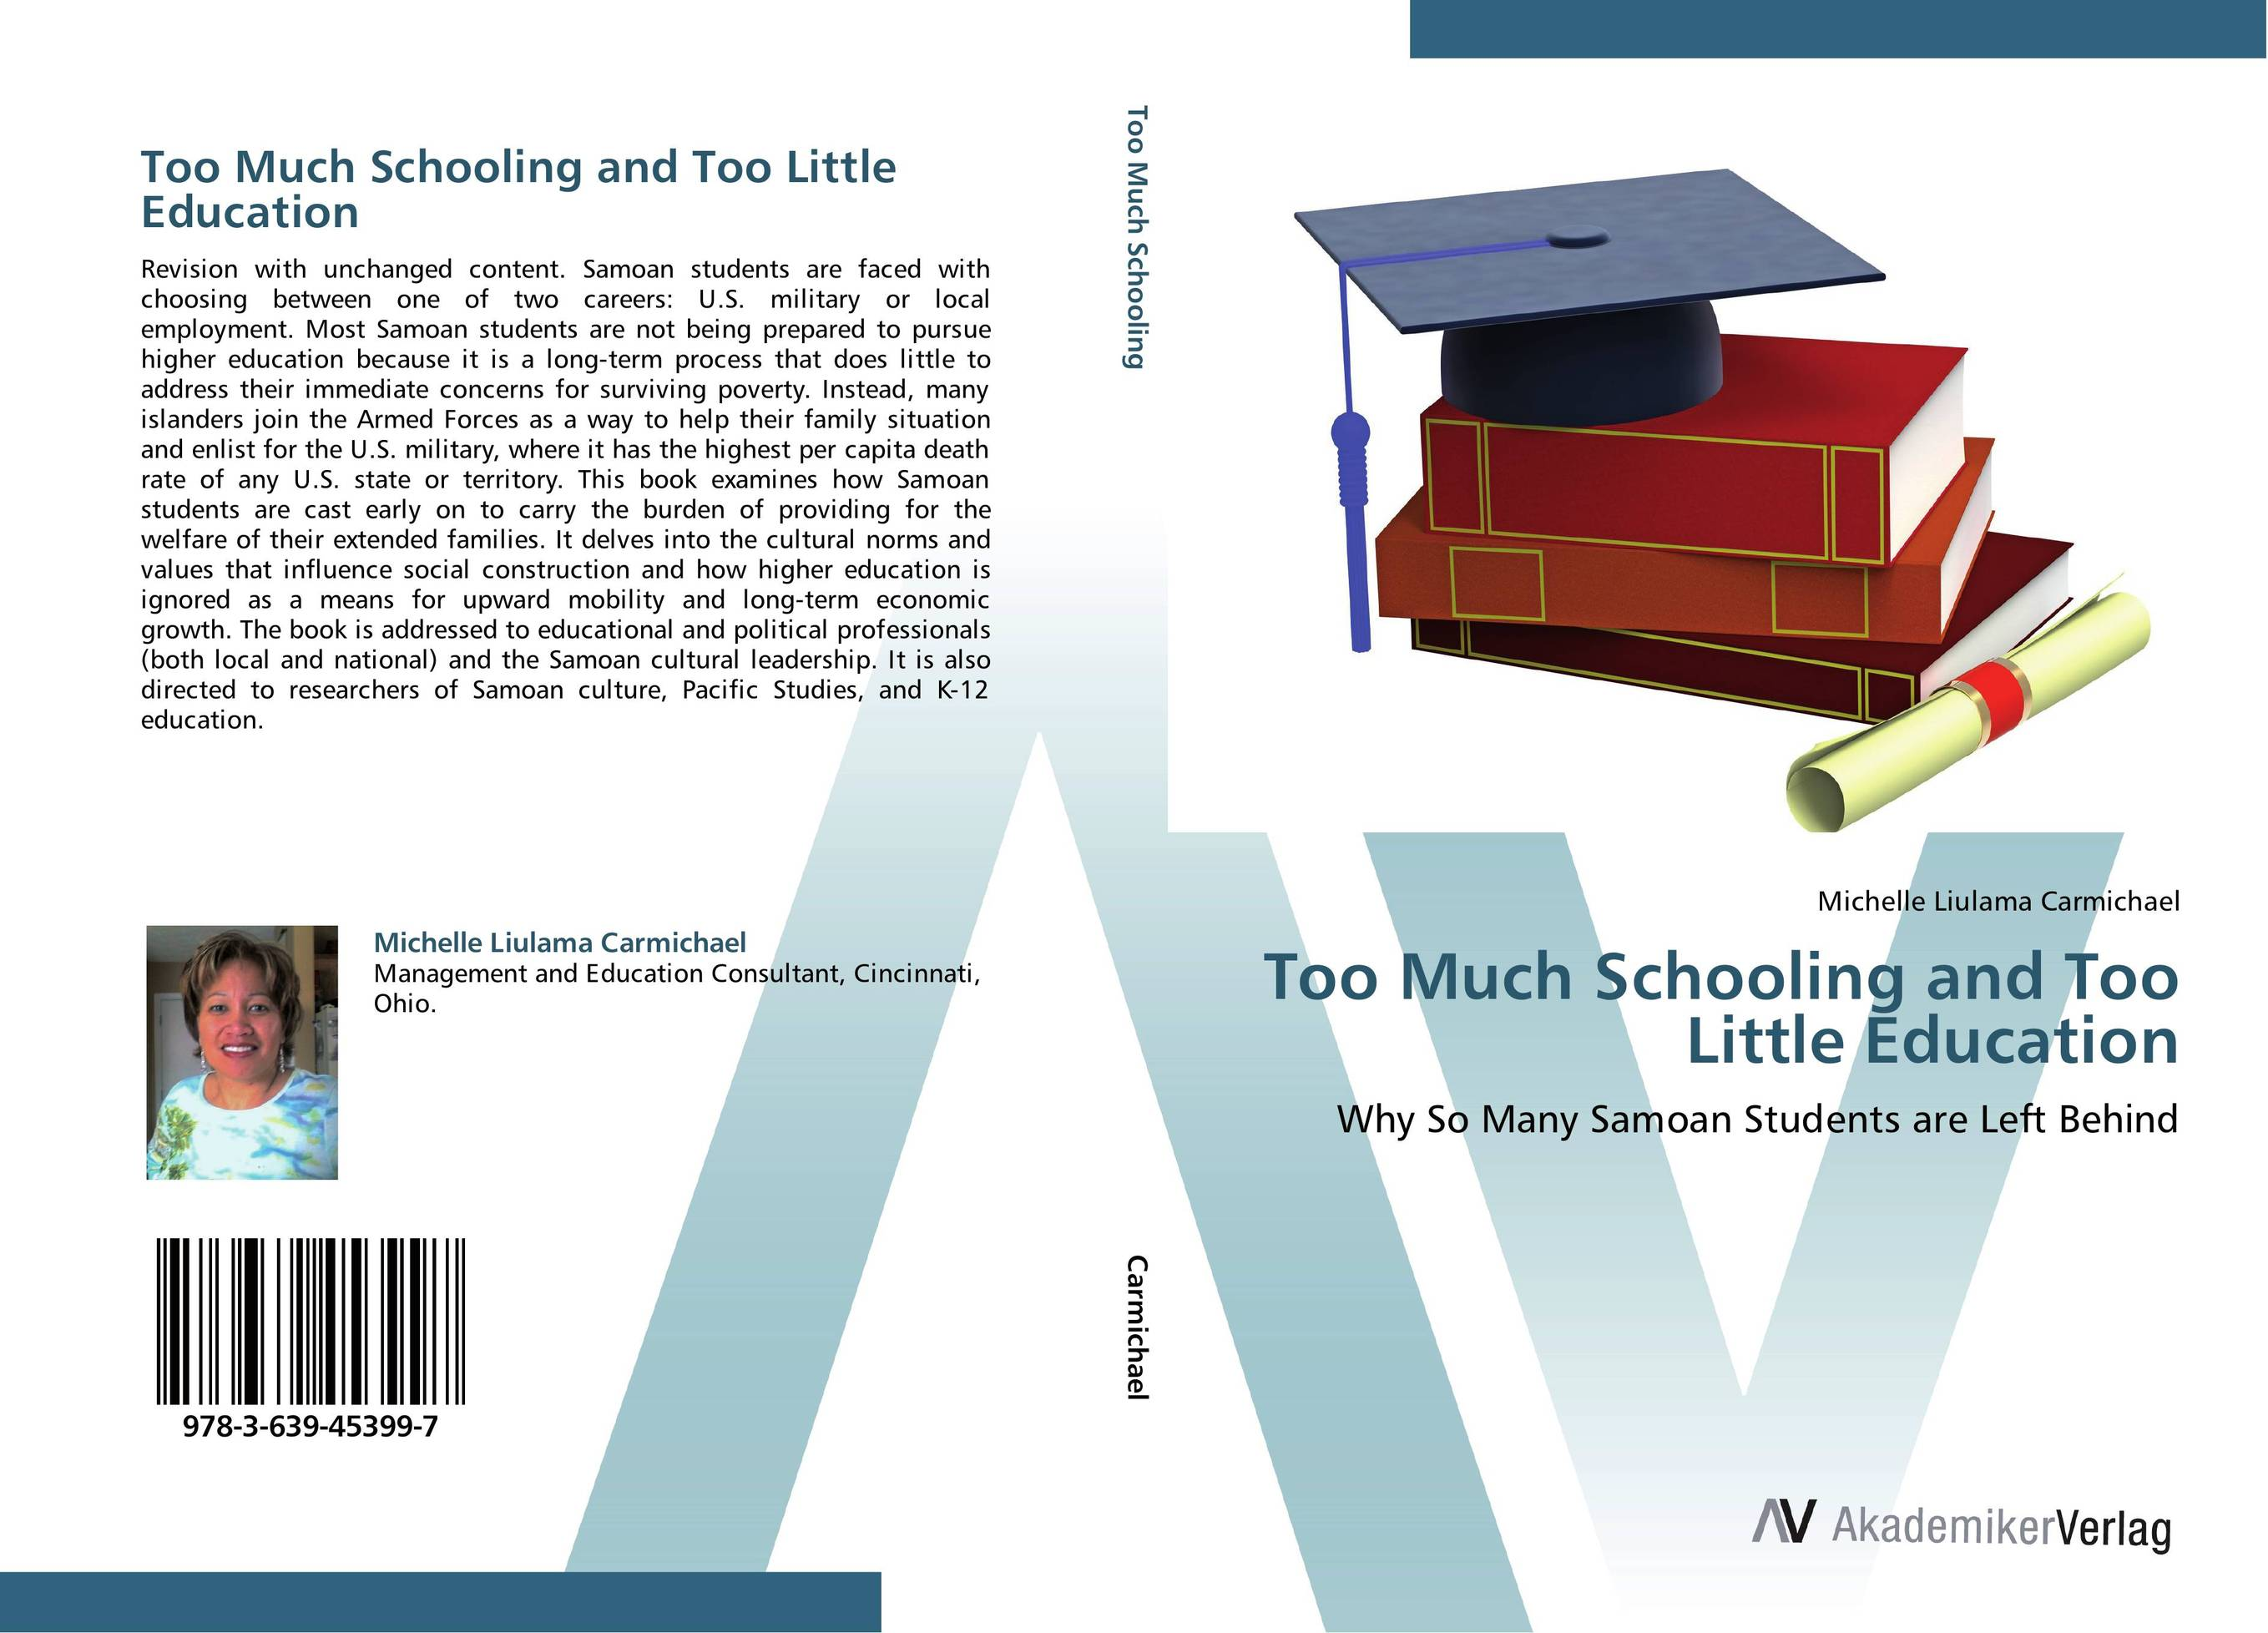 Too Much Schooling and Too Little Education automatic reset overvoltage and undervoltage protector against abnormal voltage too high or too low of power grid